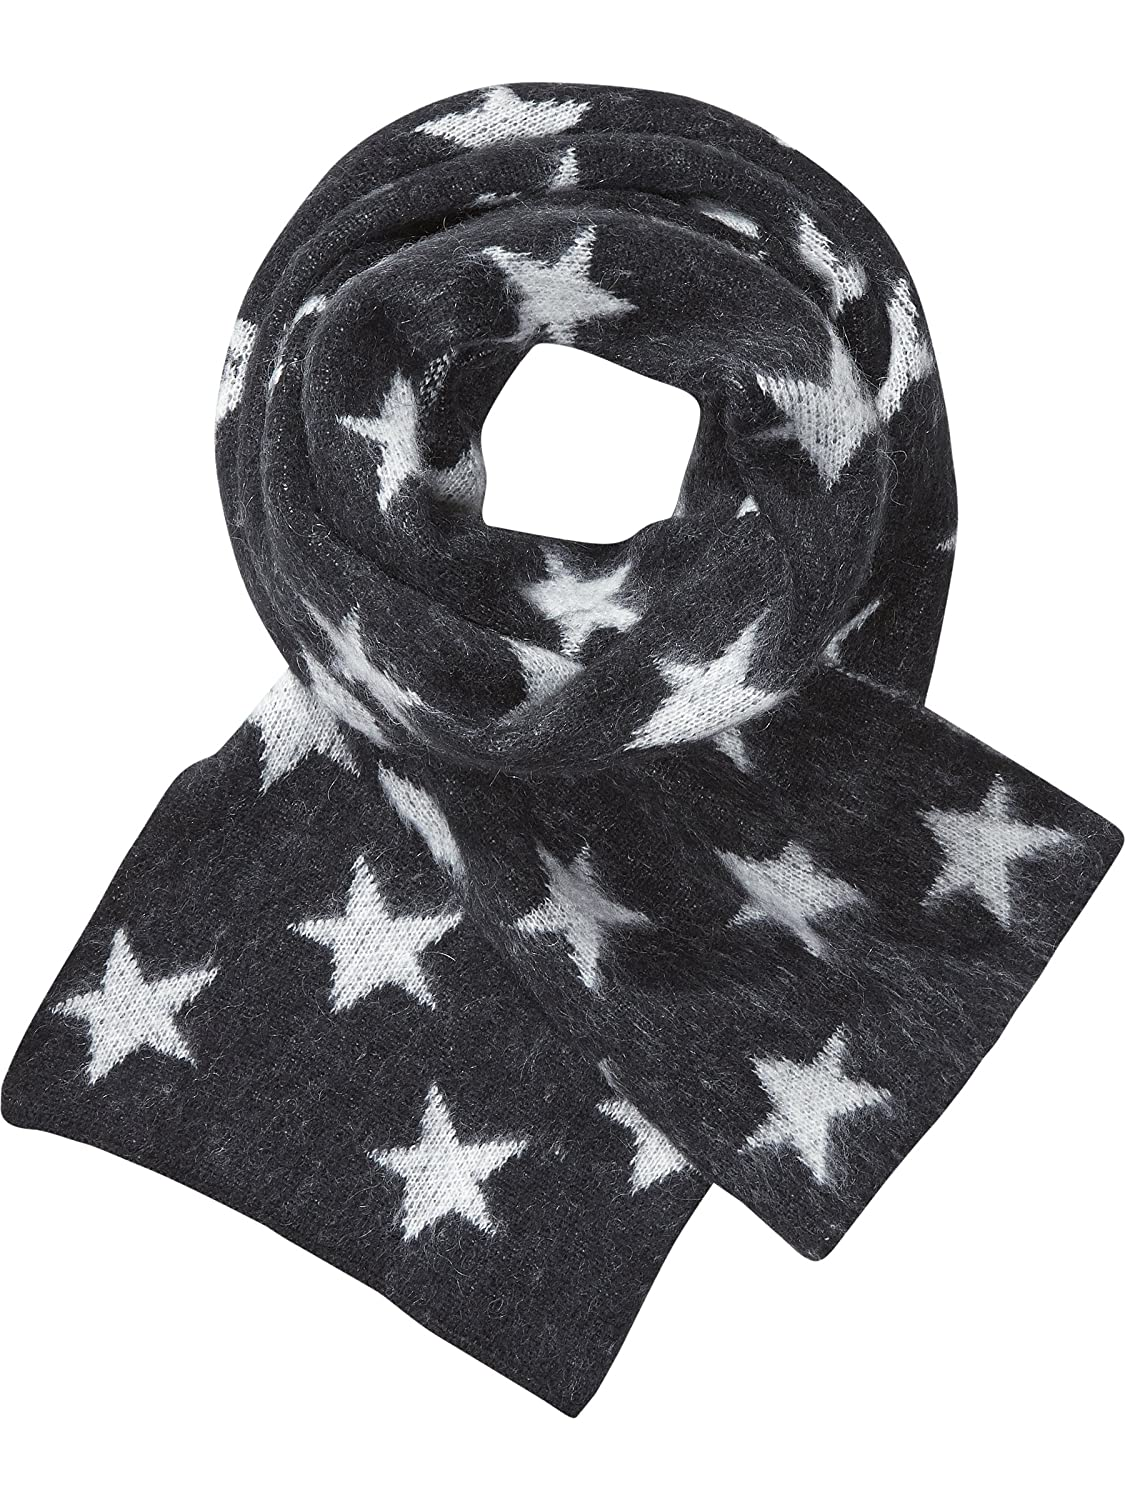 Maison Scotch Damen Umschlagtuch Fluffy Star Patterned Scarf